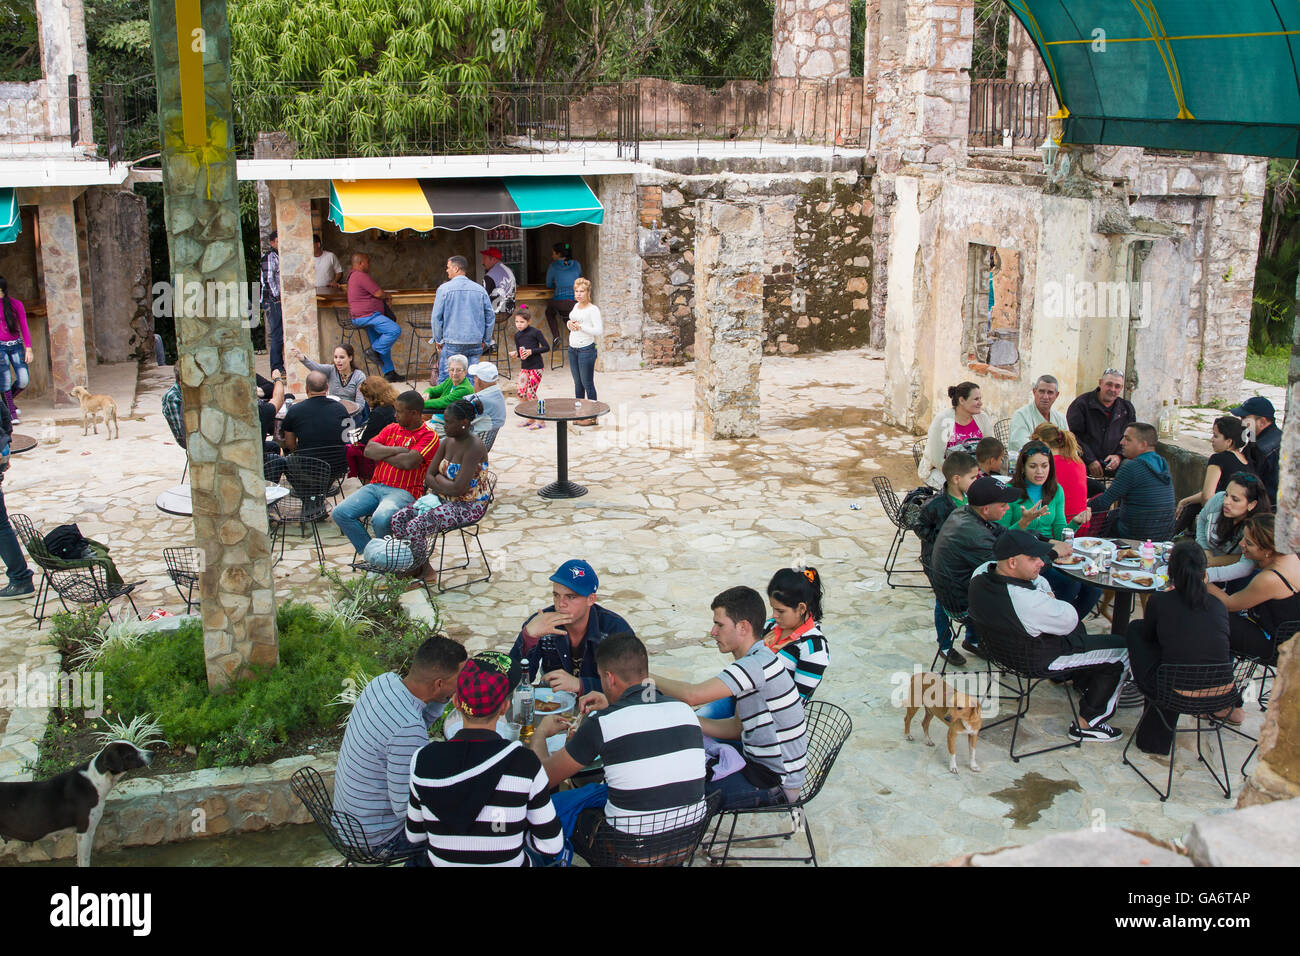 People dining at an outdoor cafe in La Guira National Park, Cuba - Stock Image